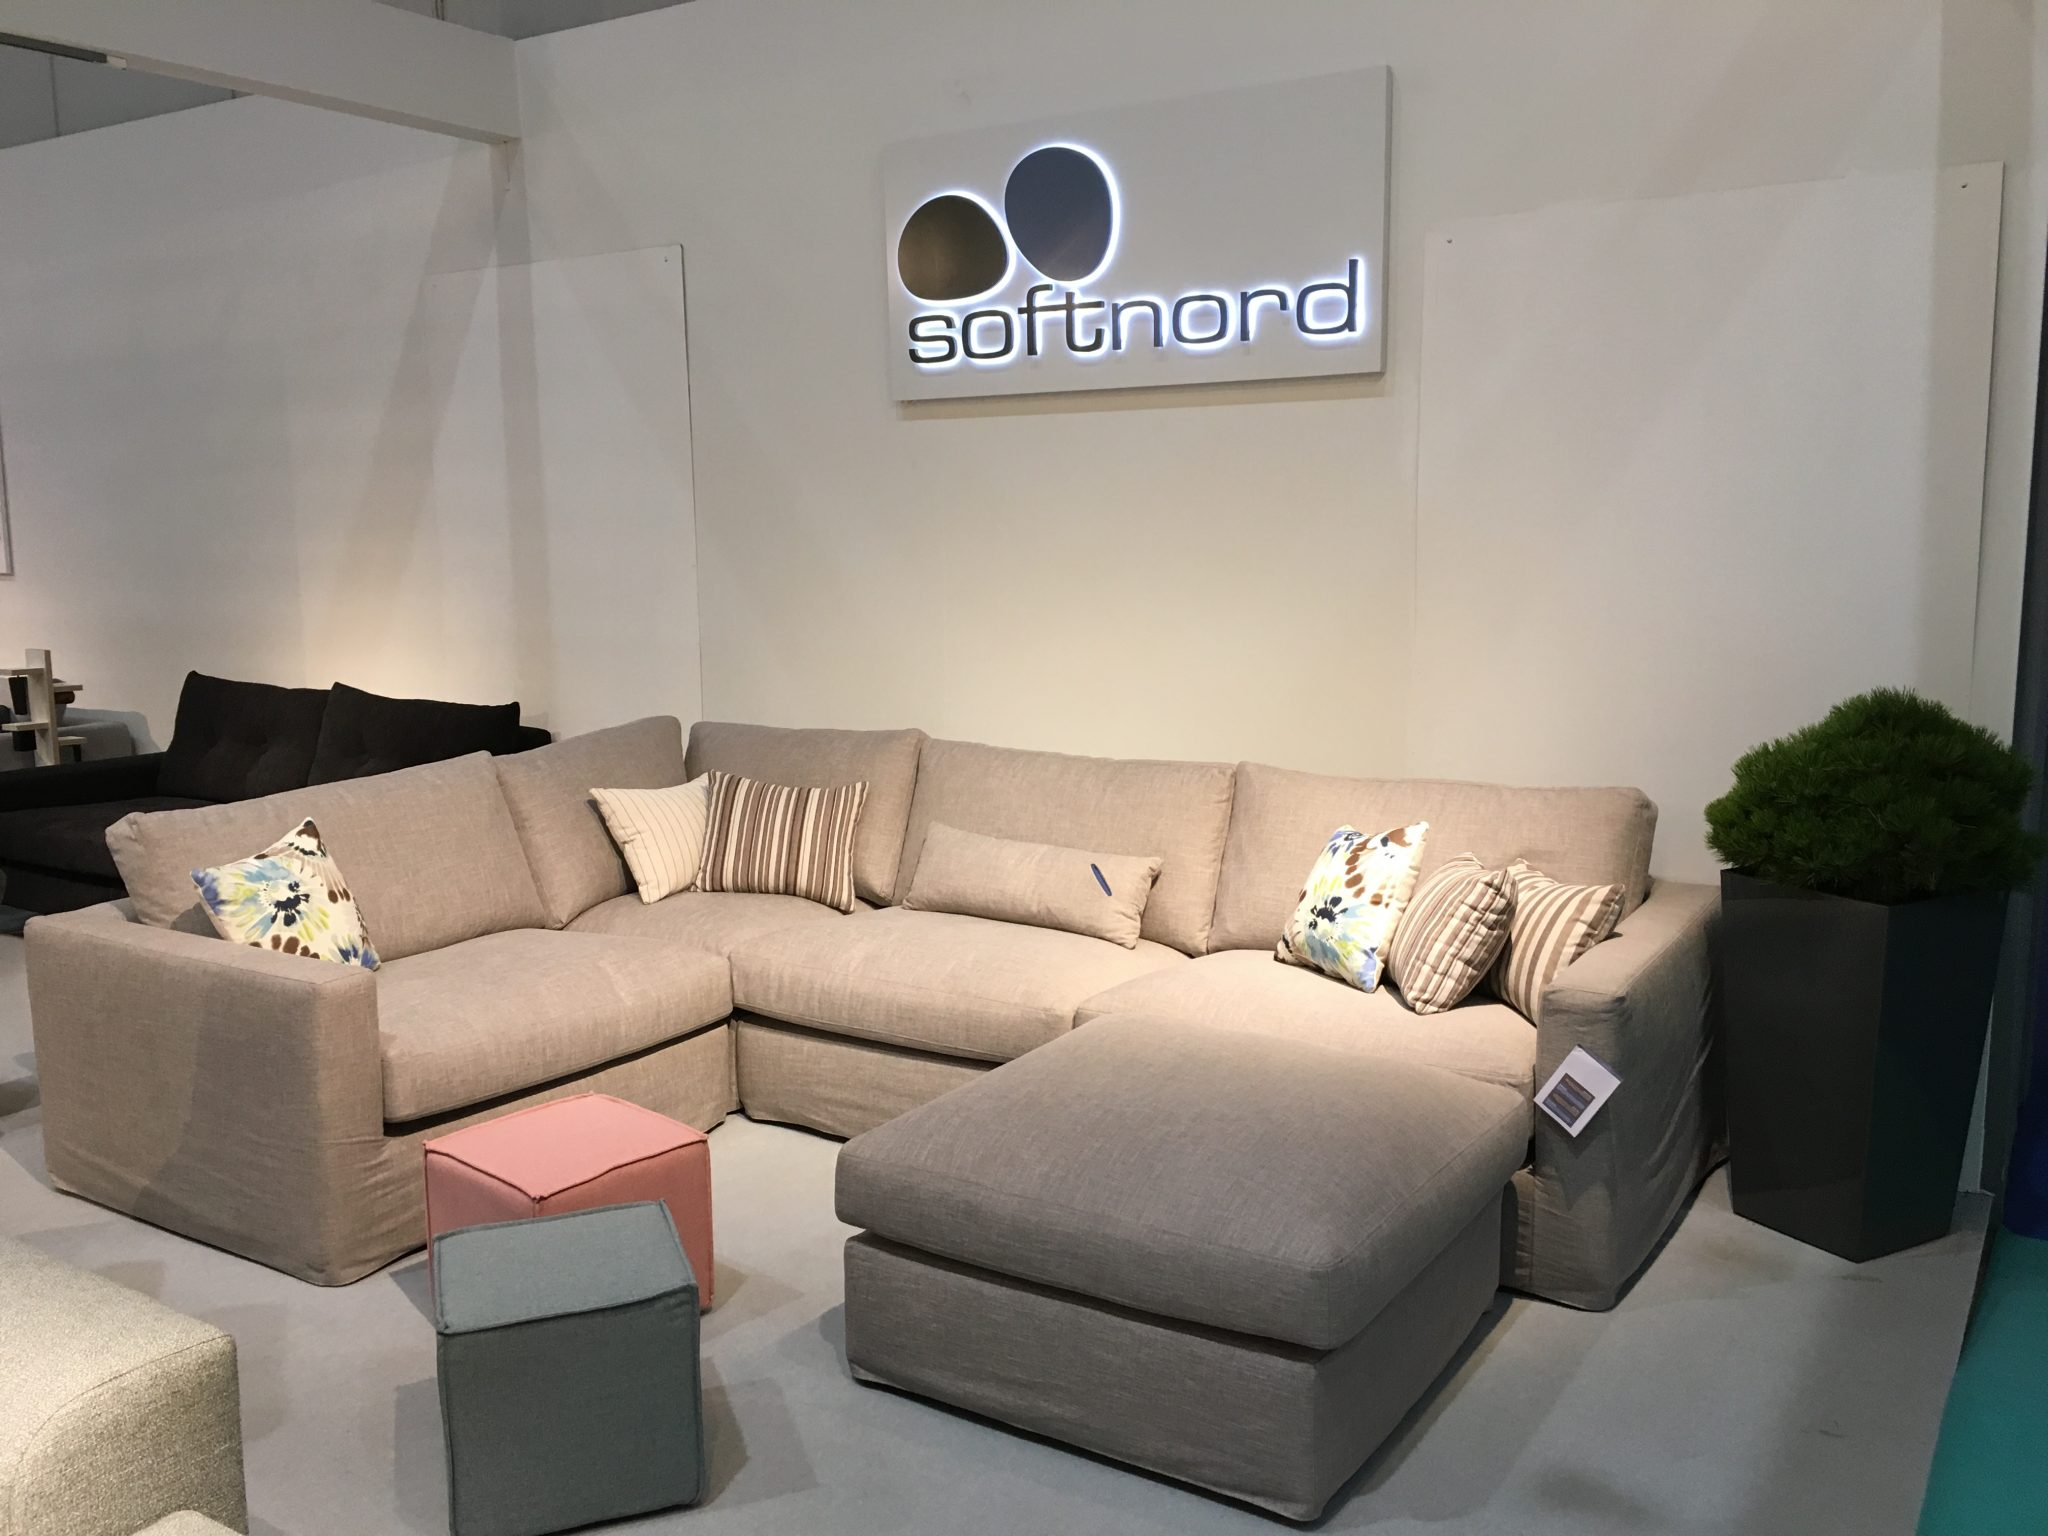 Brussels Furniture Fairs 2015